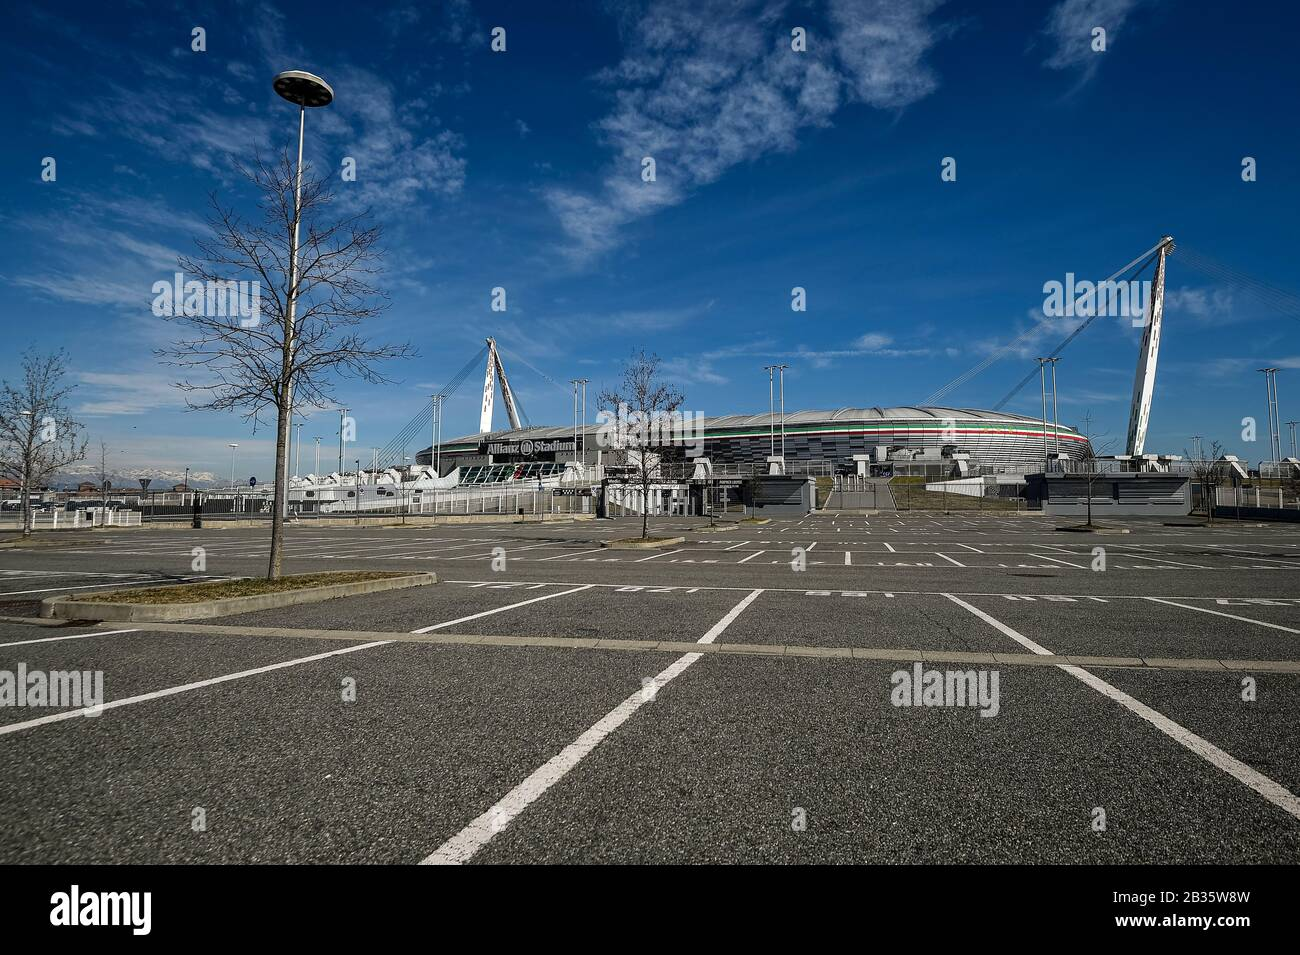 Turin Italy March 04 2020 An Empty Parking Is Seen Outside Allianz Stadium Also Known As